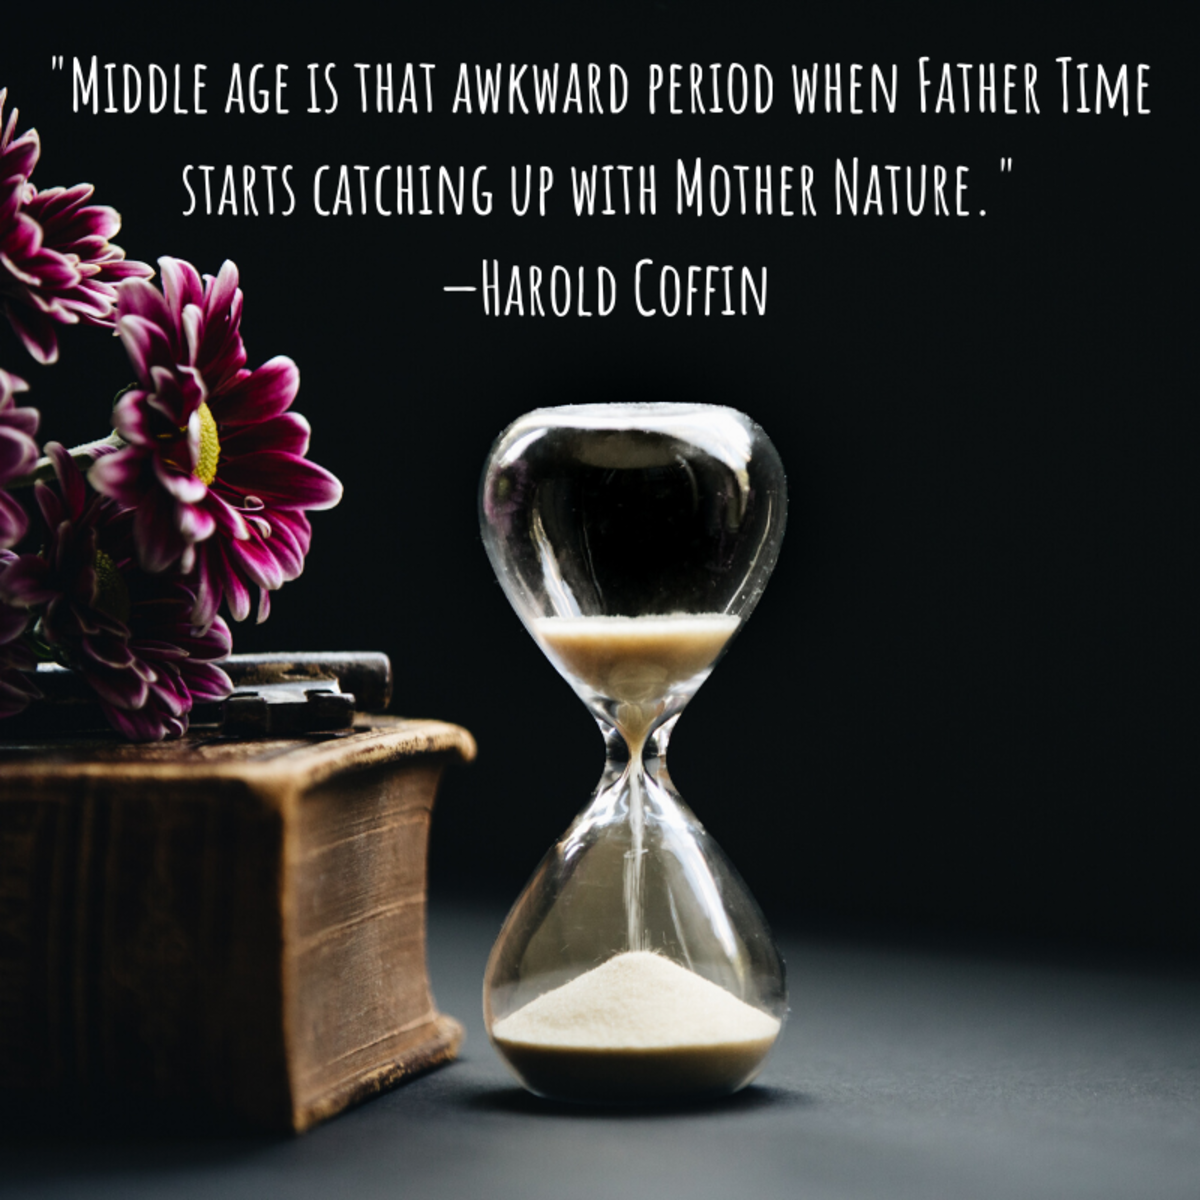 """Middle age is that awkward period when Father Time starts catching up with Mother Nature."" —Harold Coffin"